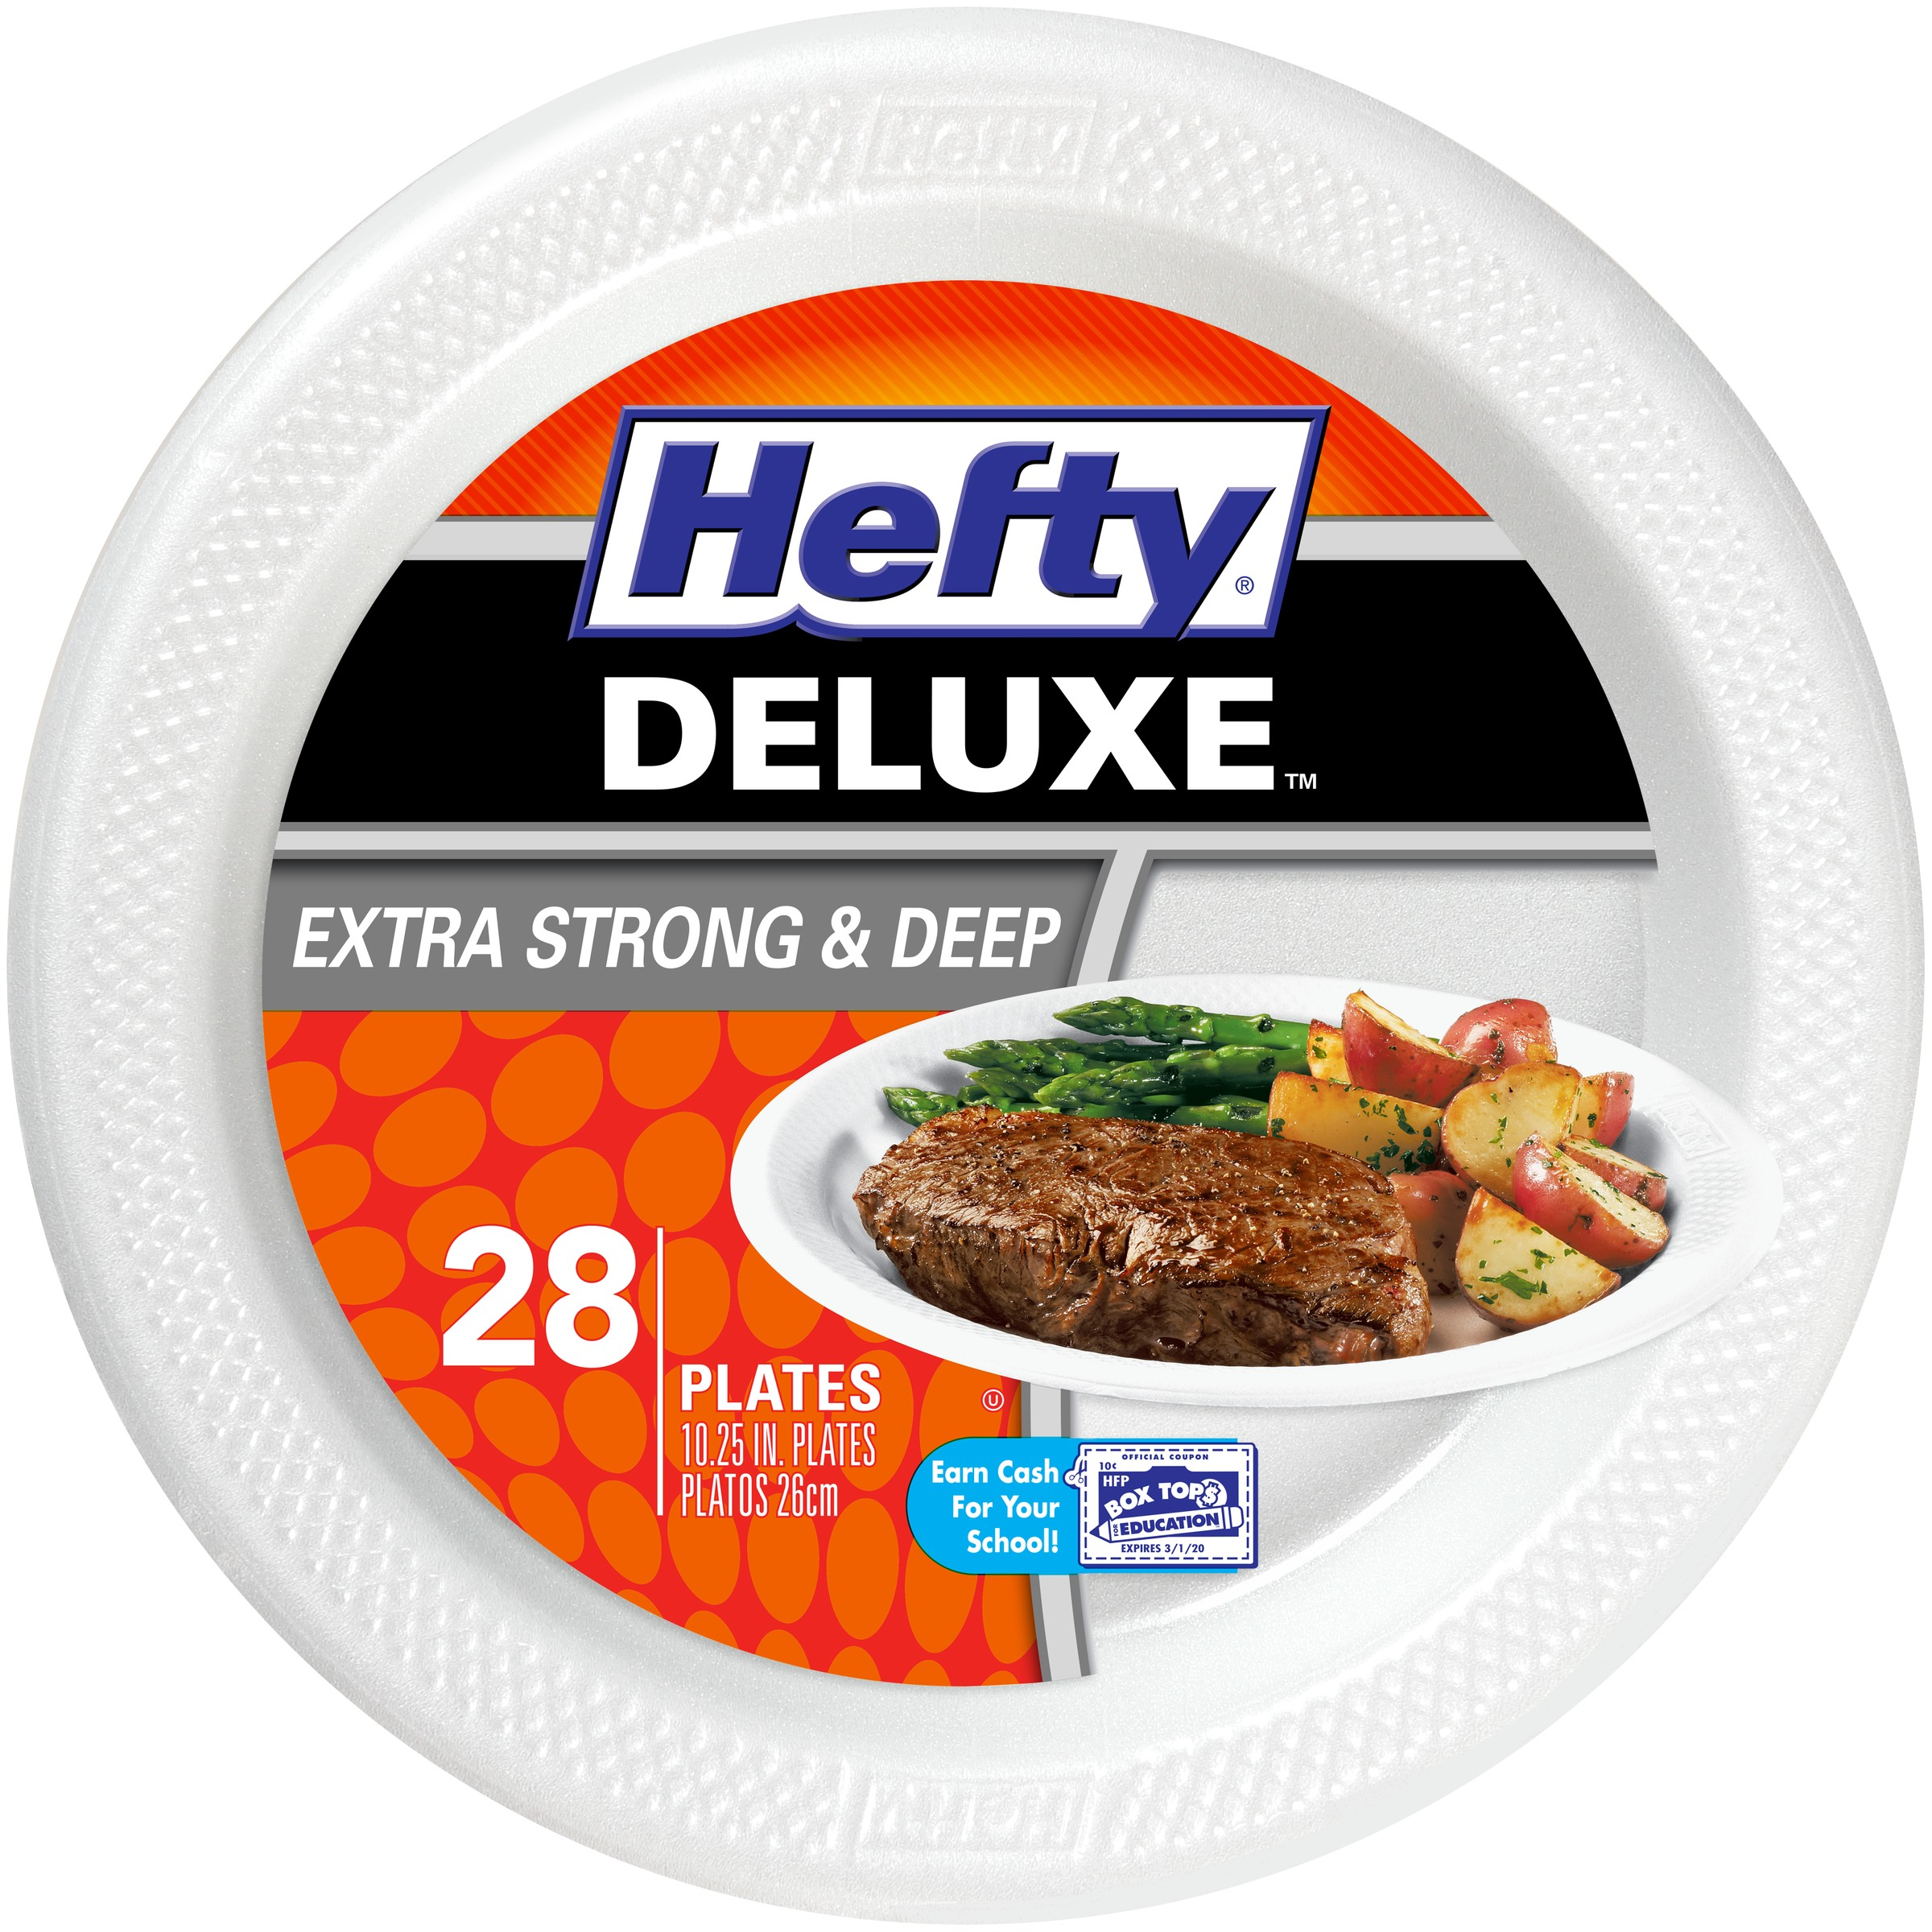 Hefty® Deluxe™ Extra Strong & Deep Foam Plates 28 ct Bag